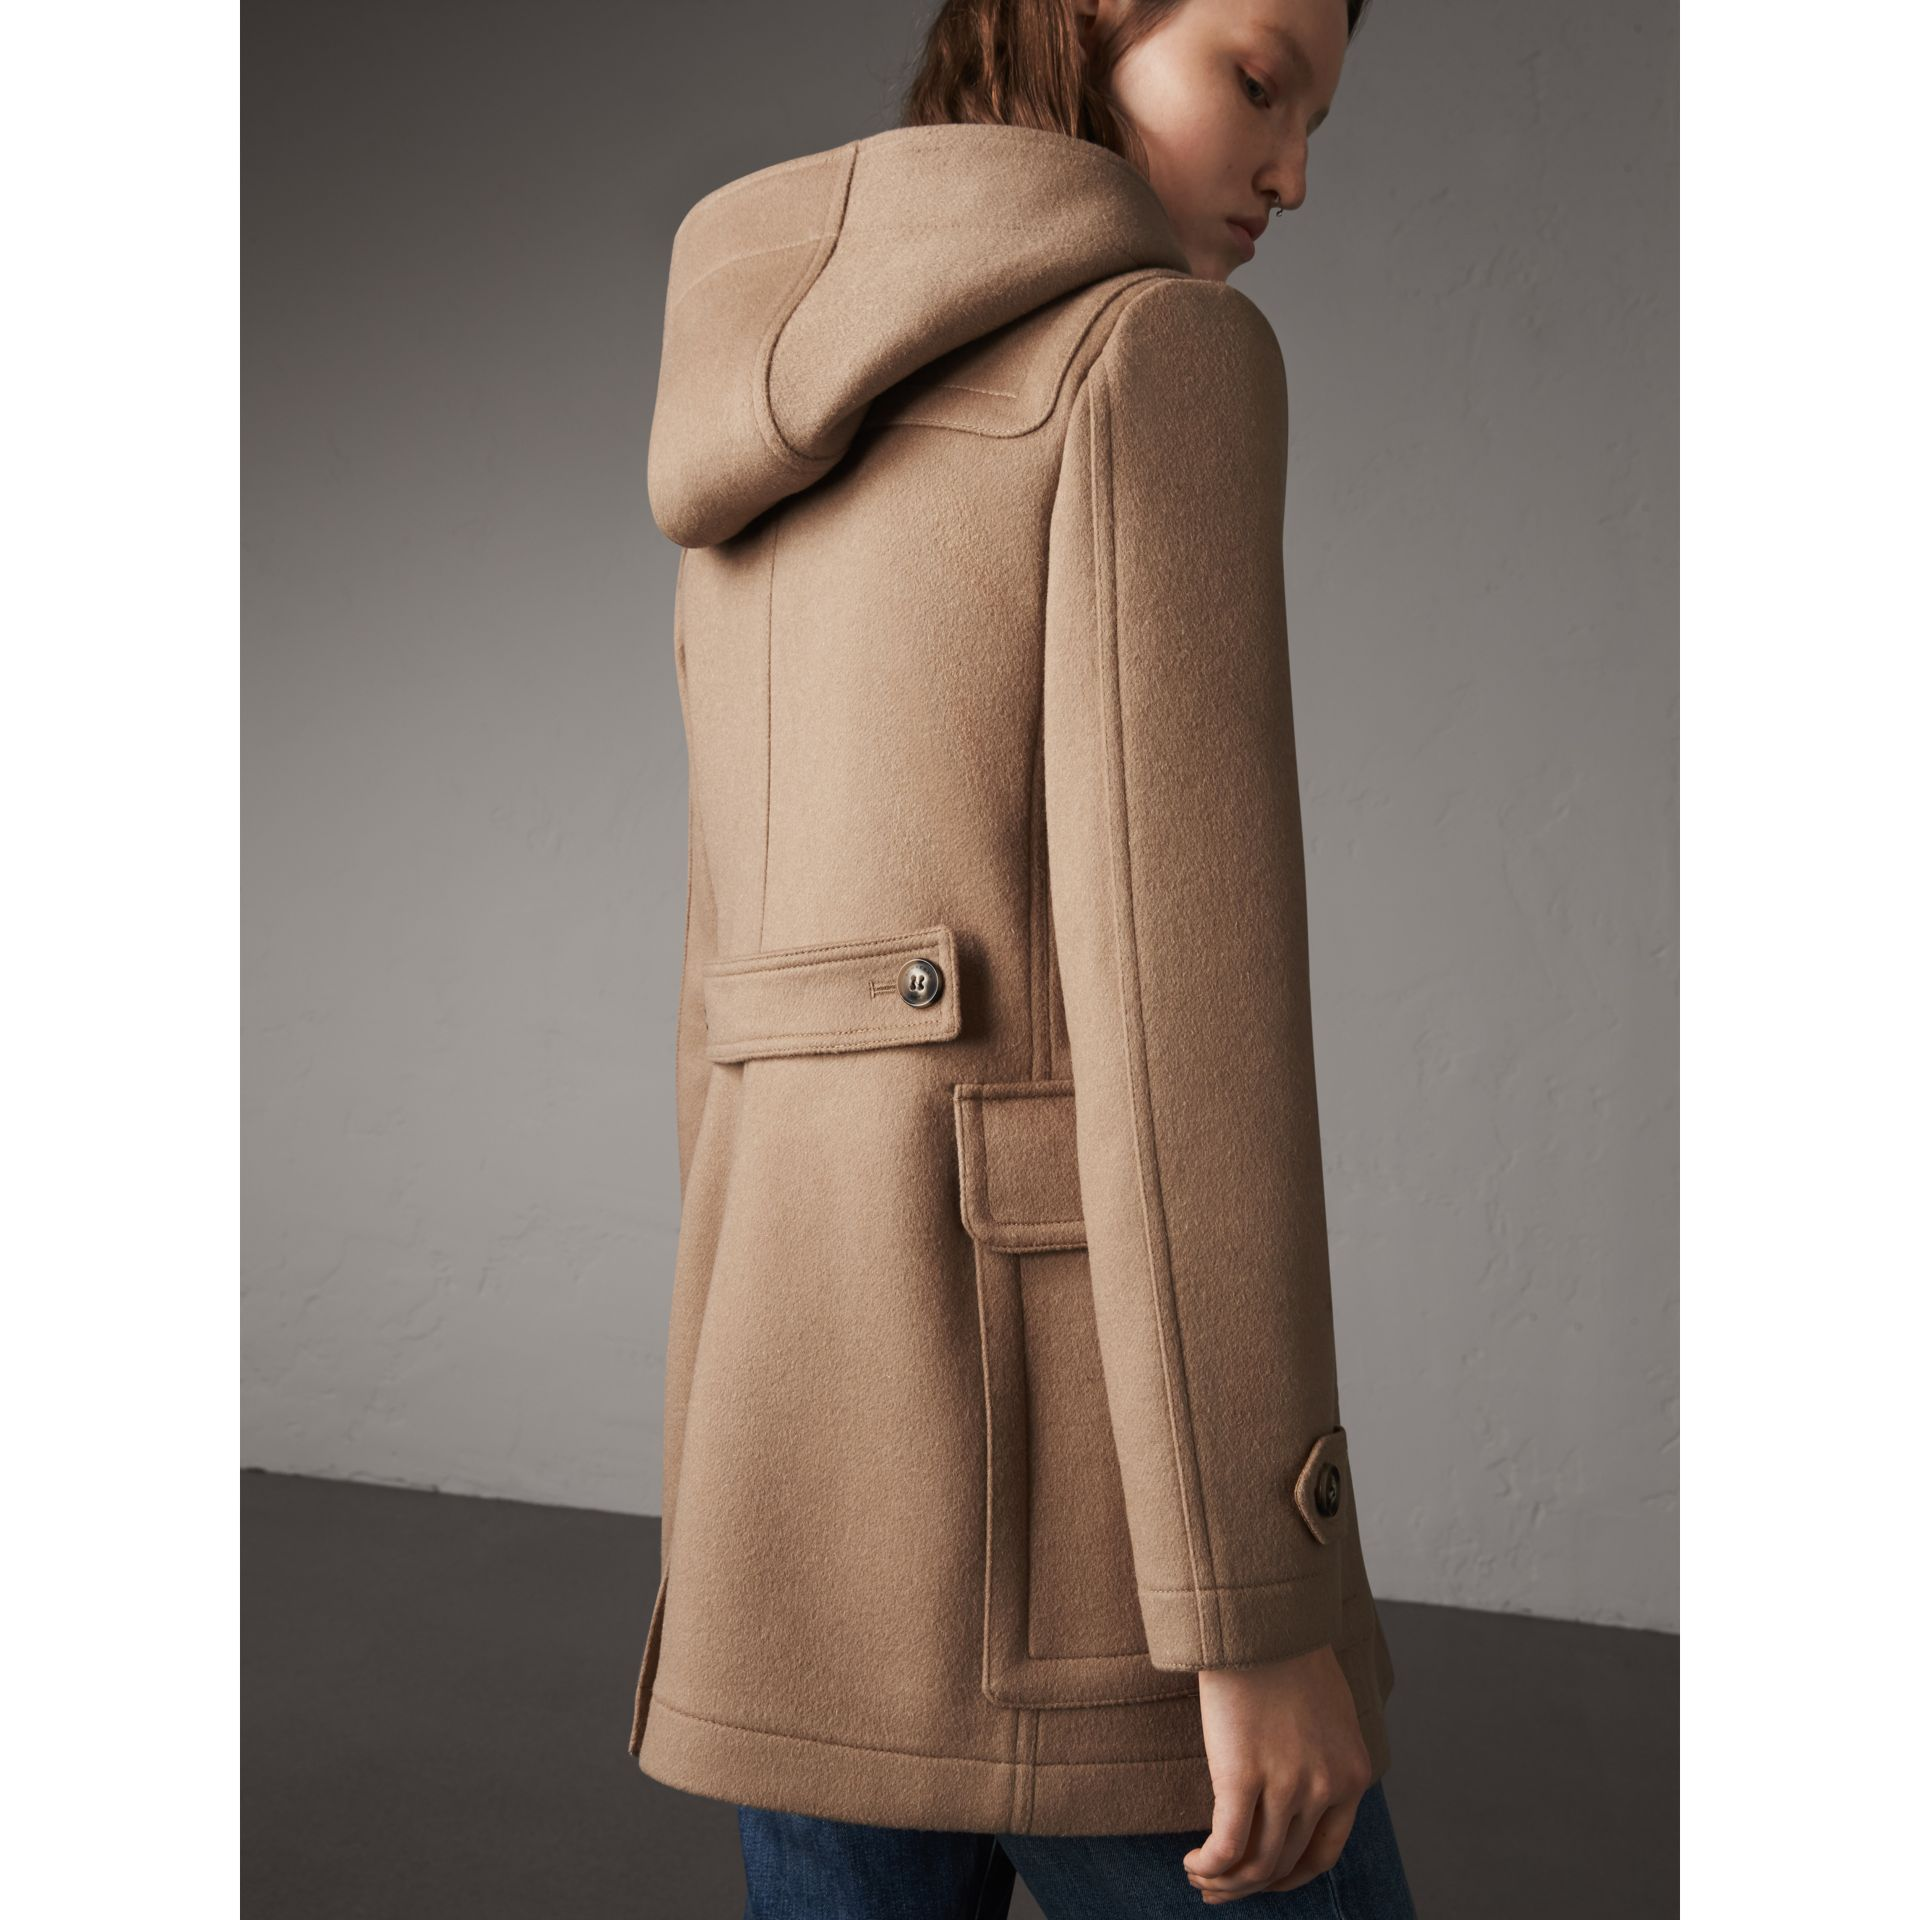 Fitted Wool Duffle Coat in New Camel - Women | Burberry Canada - gallery image 3